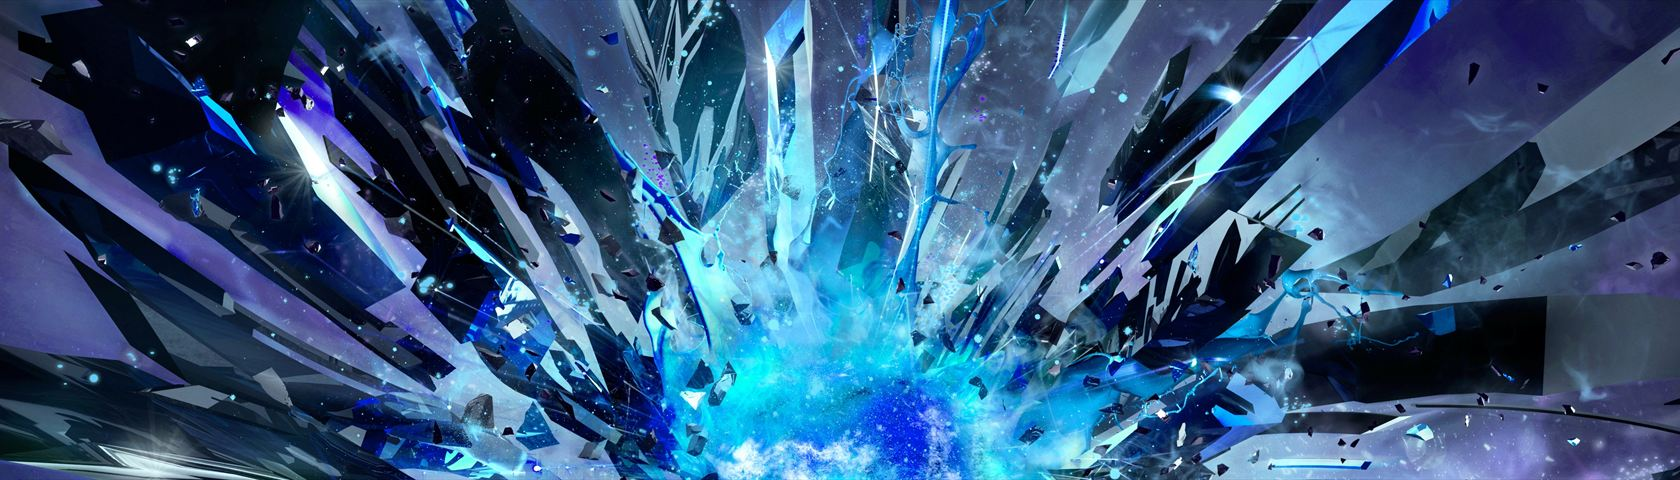 Blue Shards